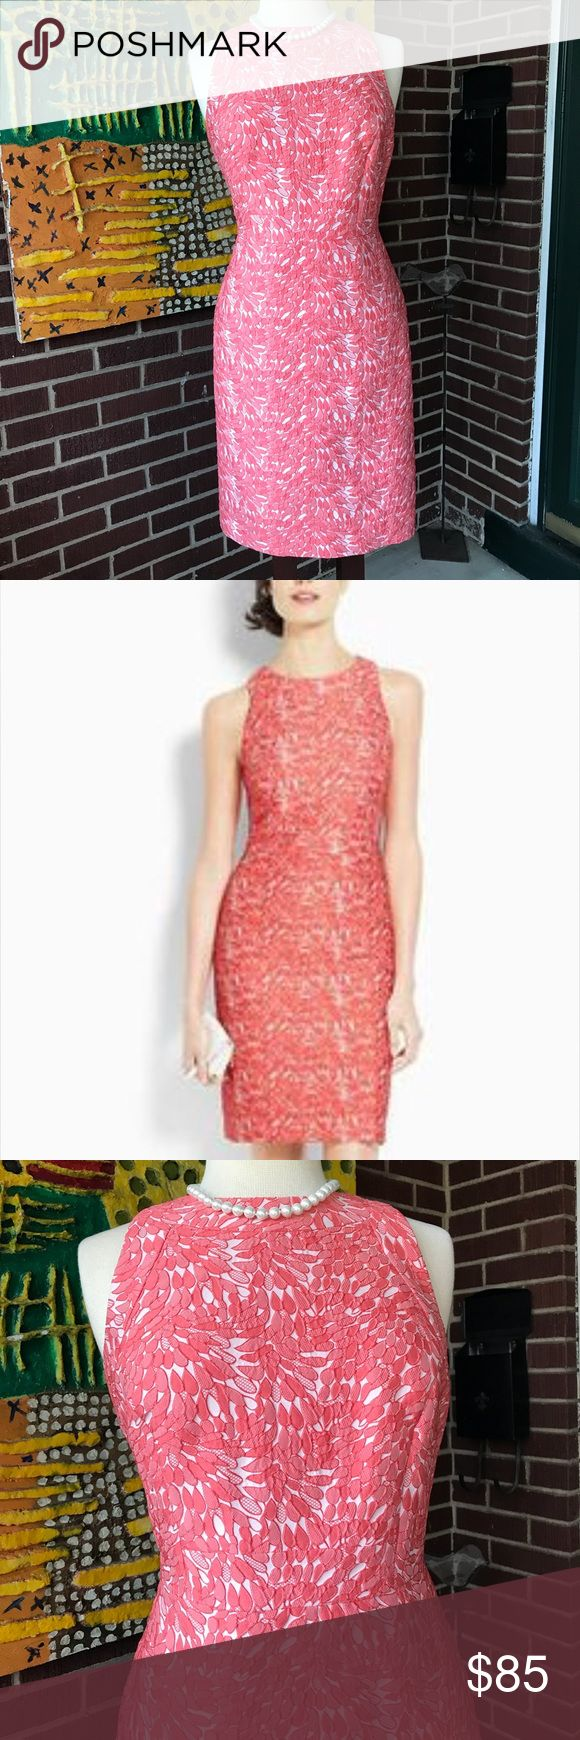 Ann Taylor Lace Coral   Sheath Dress This dress from Ann Taylor is chic and very elegant. Perfect for wedding, interviews, and formal parties. It has a gorgeous silhouette.  Definitely a stunning dress. With back zip up closure and lined. Like new condition. Ann Taylor Dresses Mini